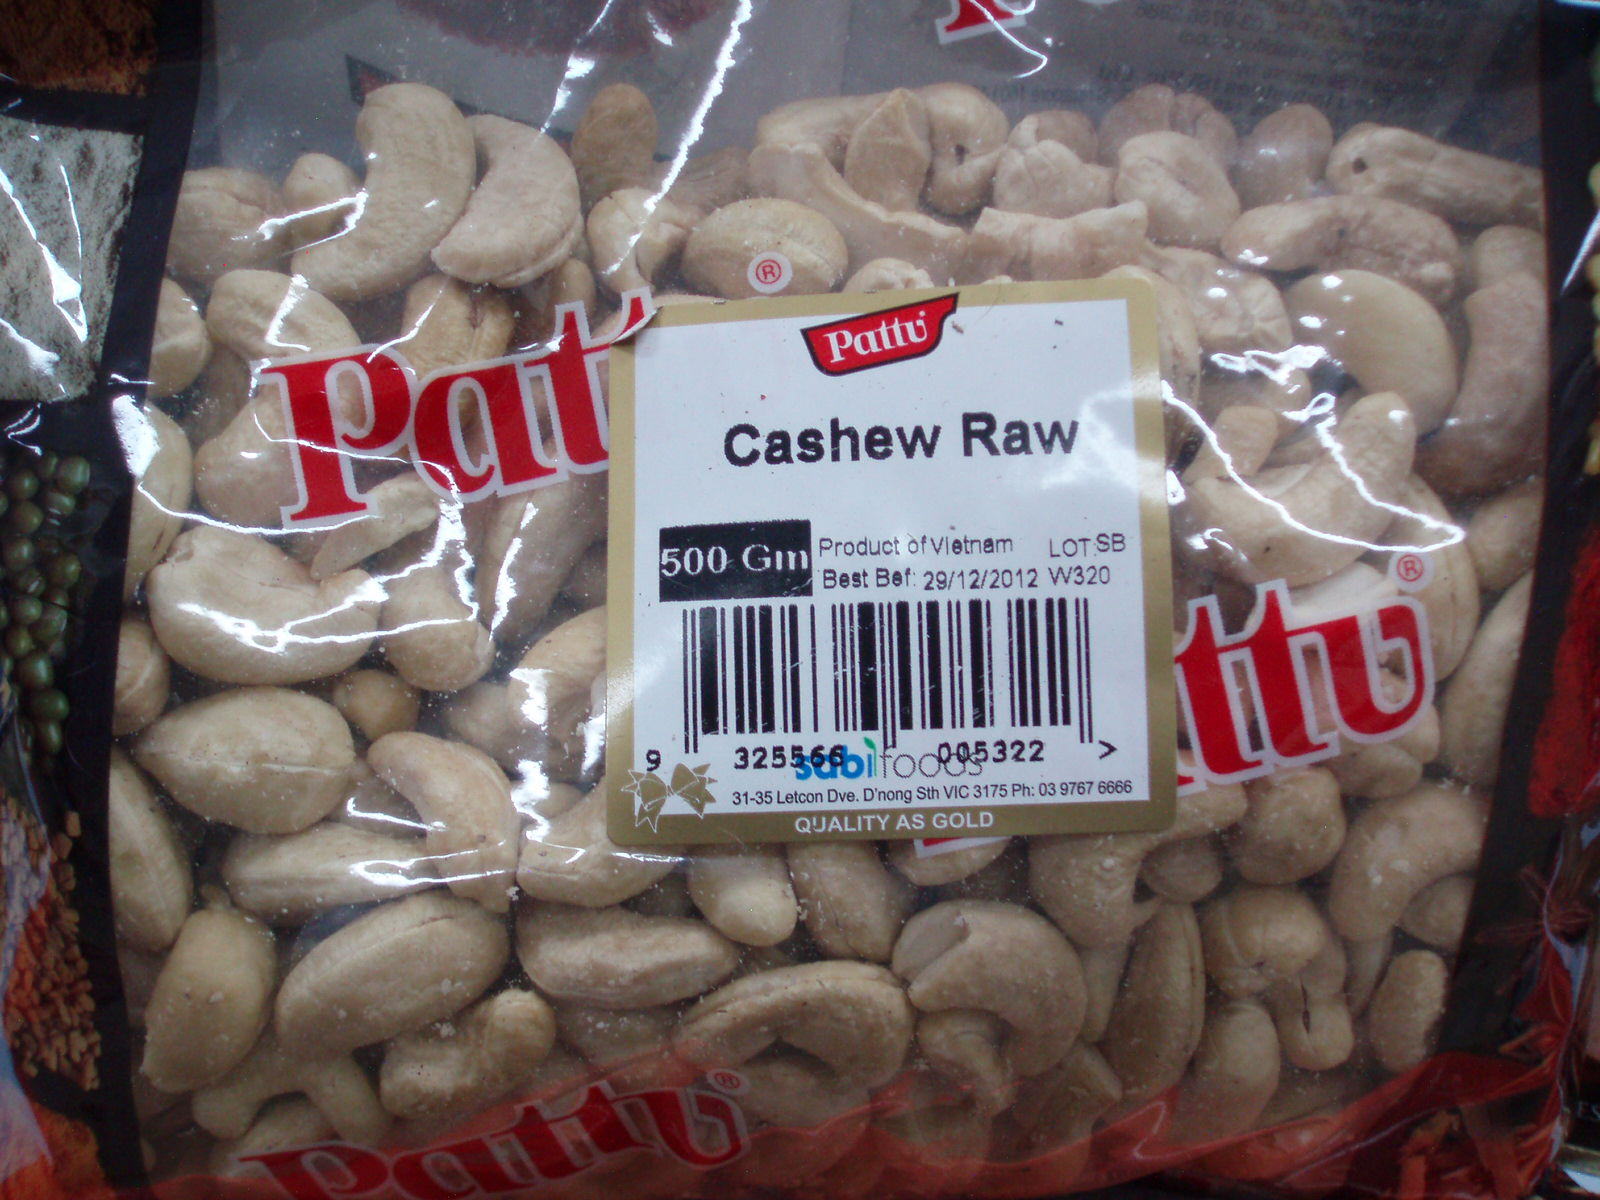 Cashew Raw-Pattu-500 gm